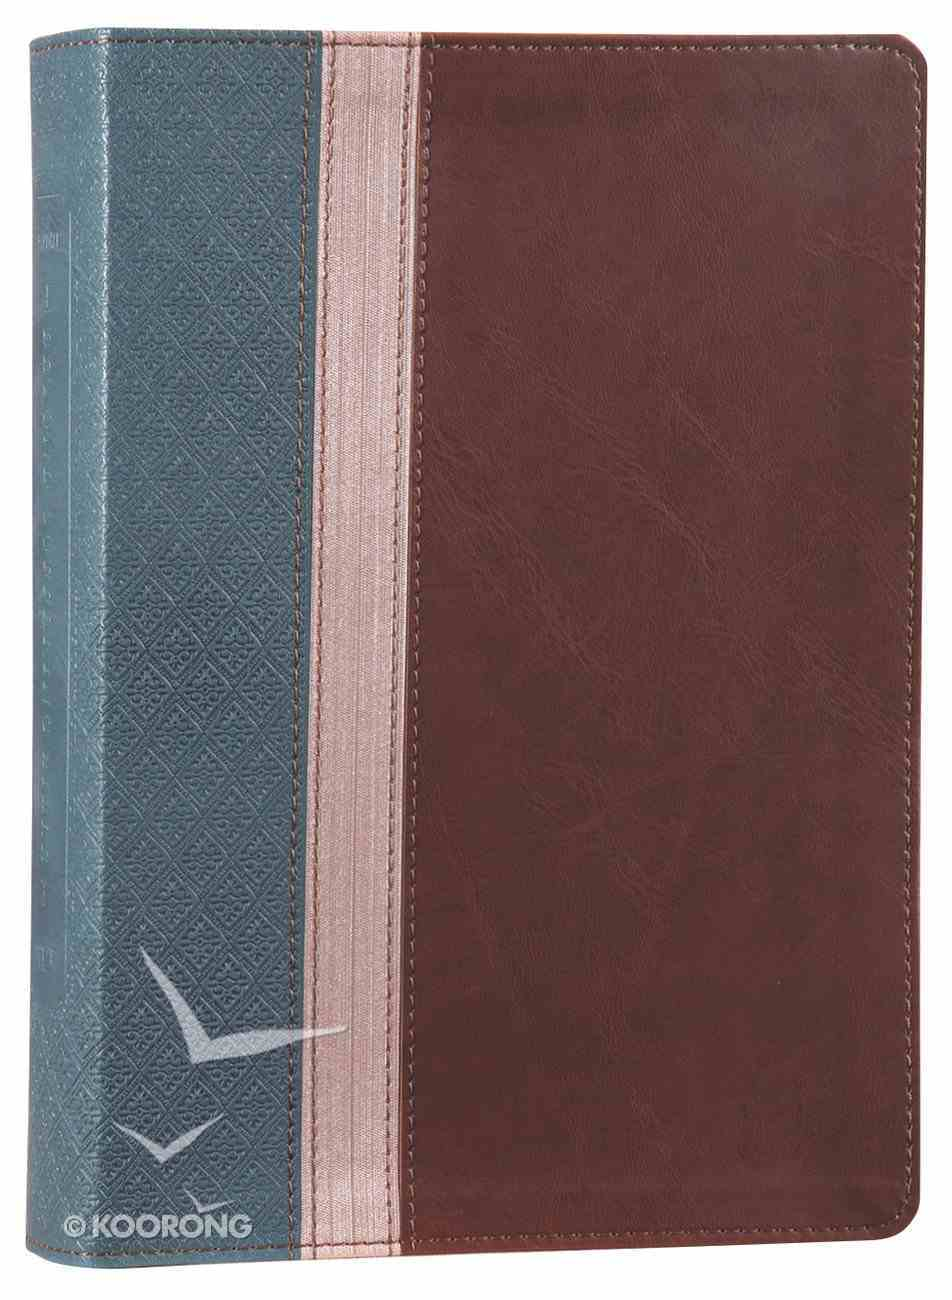 NLT Beyond Suffering Study Bible Teal/Rose Gold/Brown (Black Letter Edition) Imitation Leather